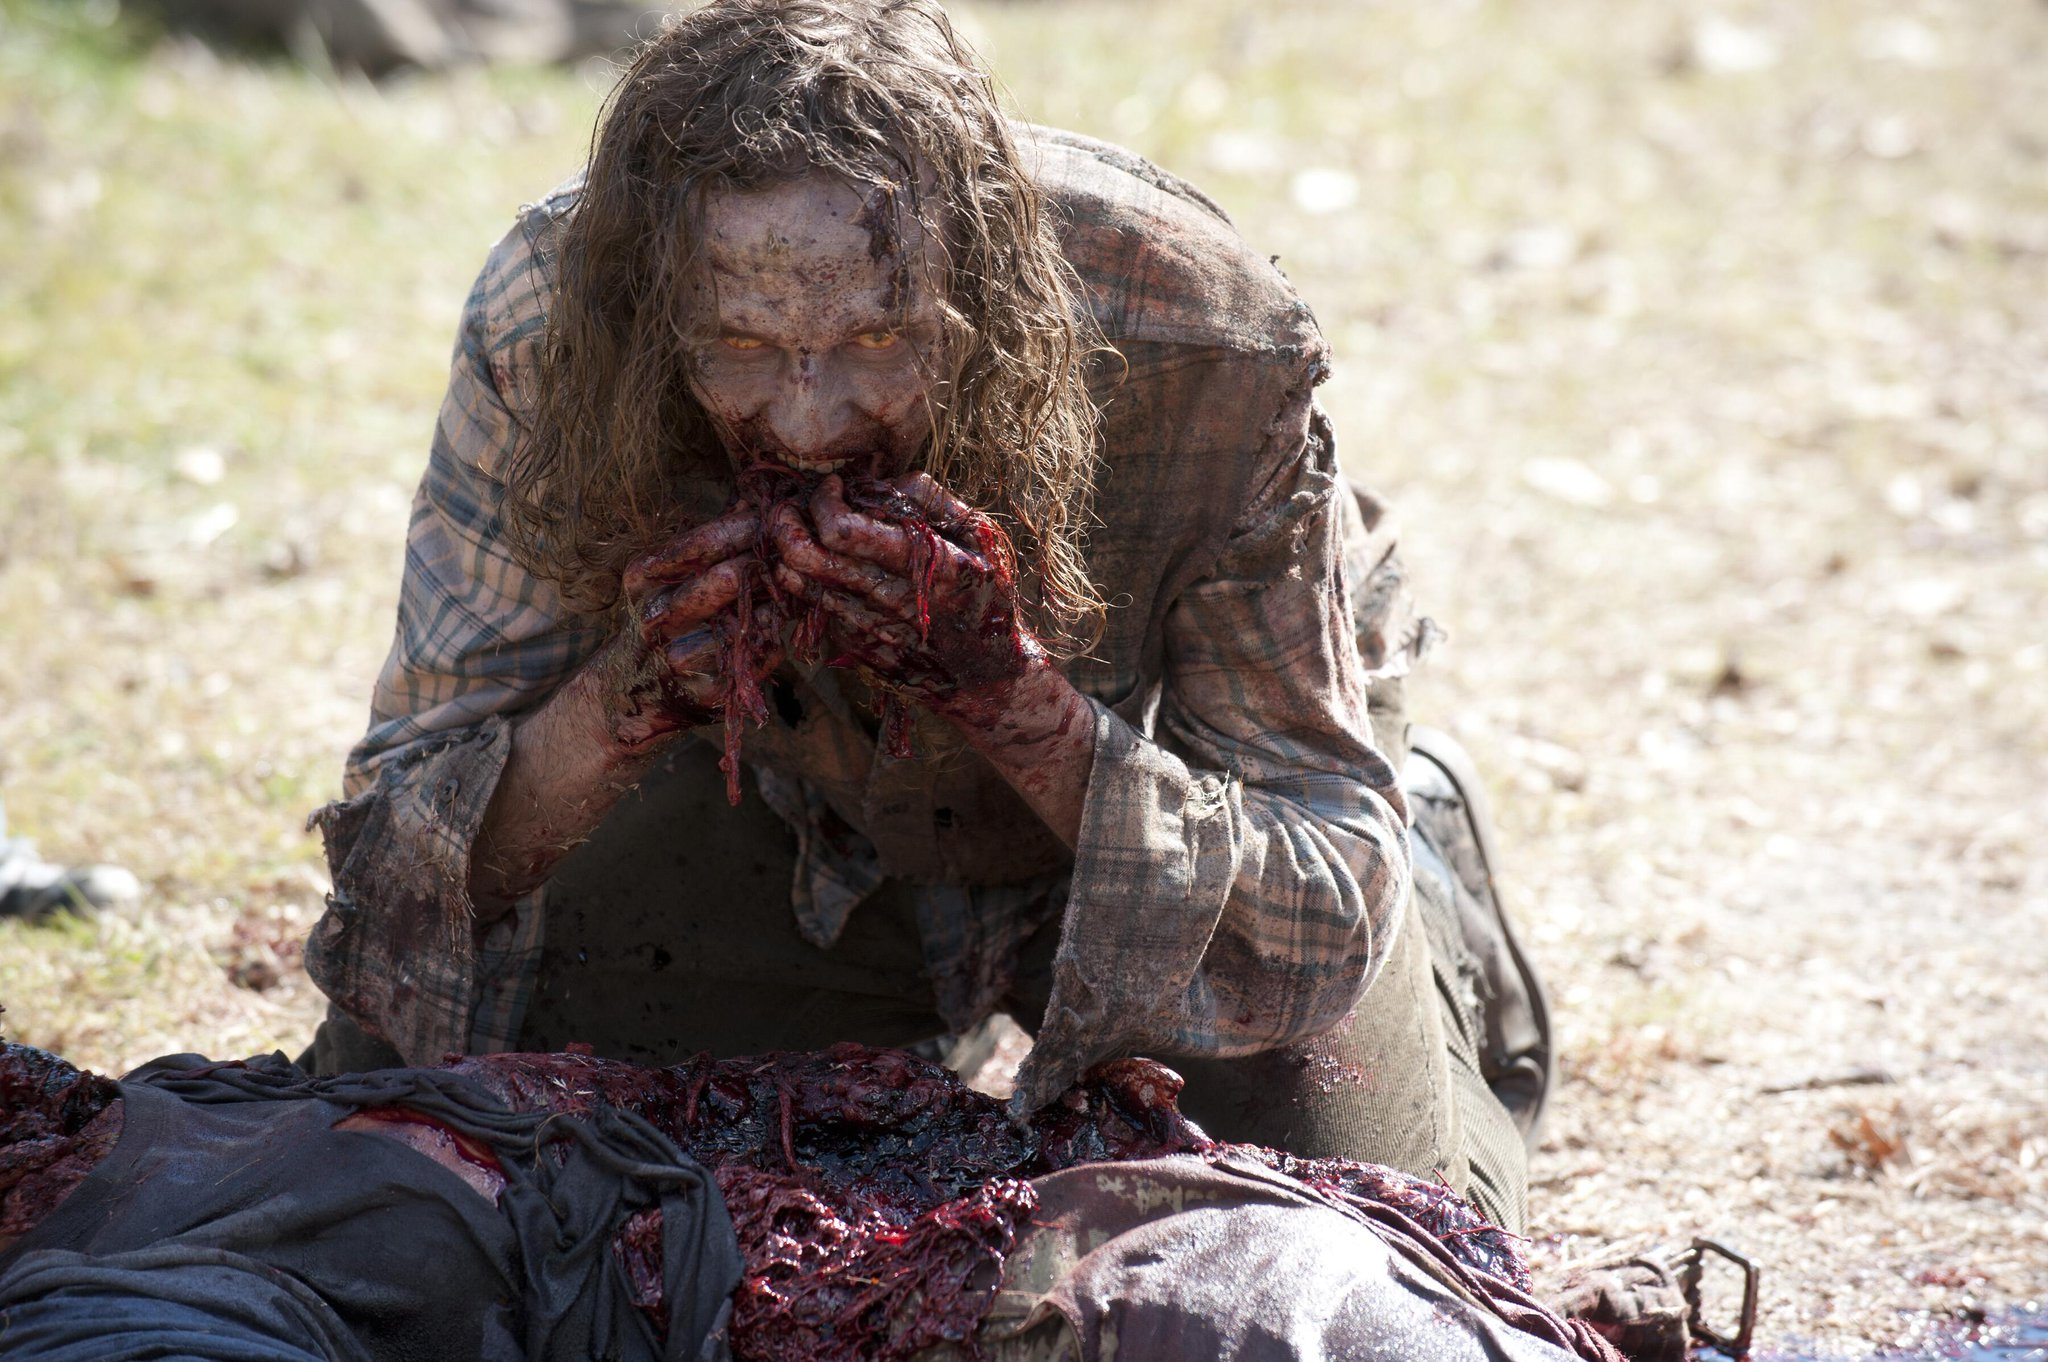 Eat your heart out. #TBT #TheWalkingDead http://t.co/6b38crST45